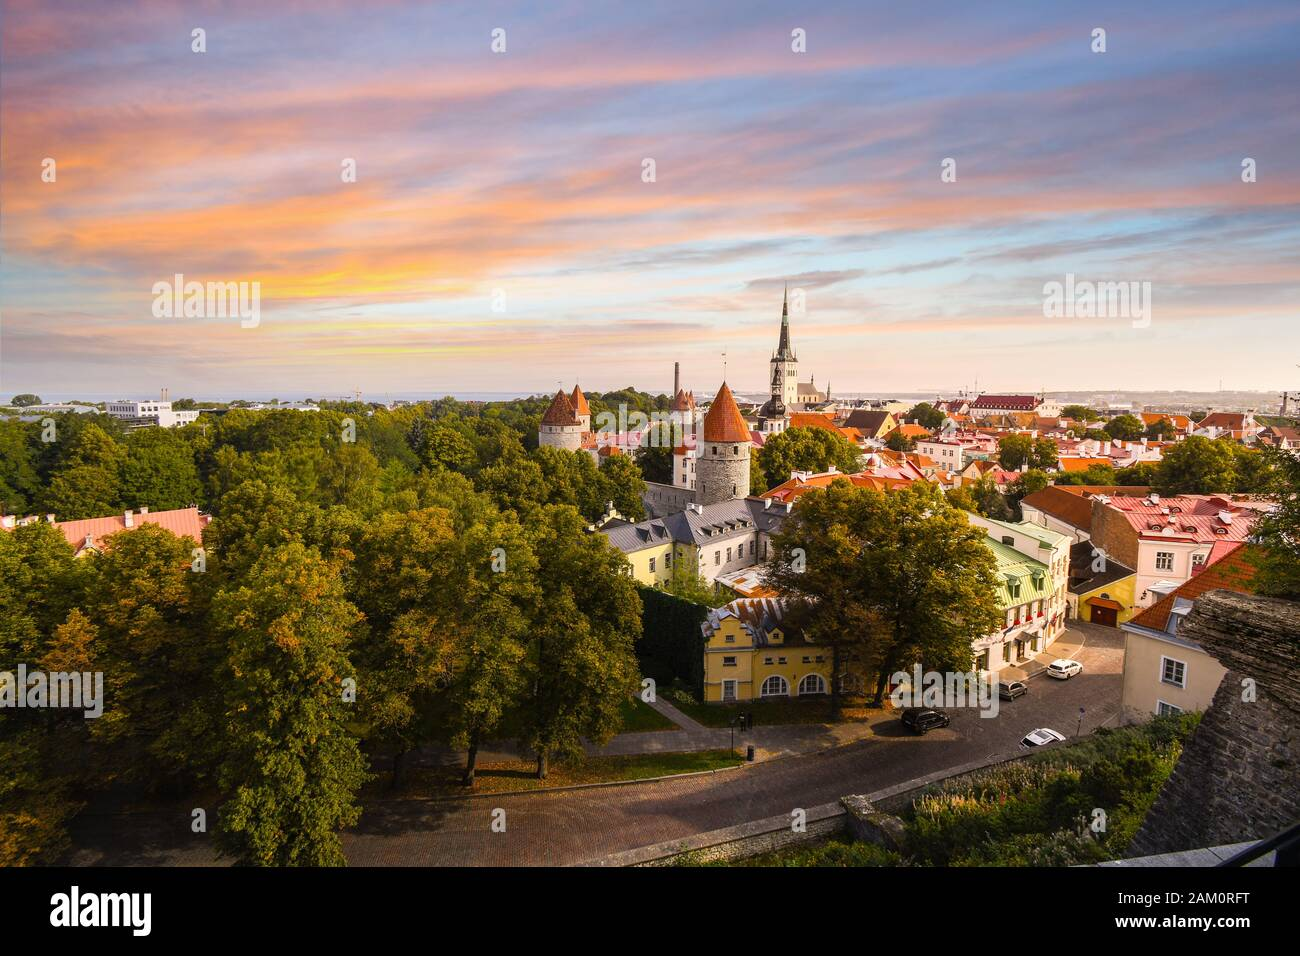 A colorful sunset above medieval old town Tallinn Estonia as viewed from upper town Toompea Hill in the European Baltic Region. Stock Photo